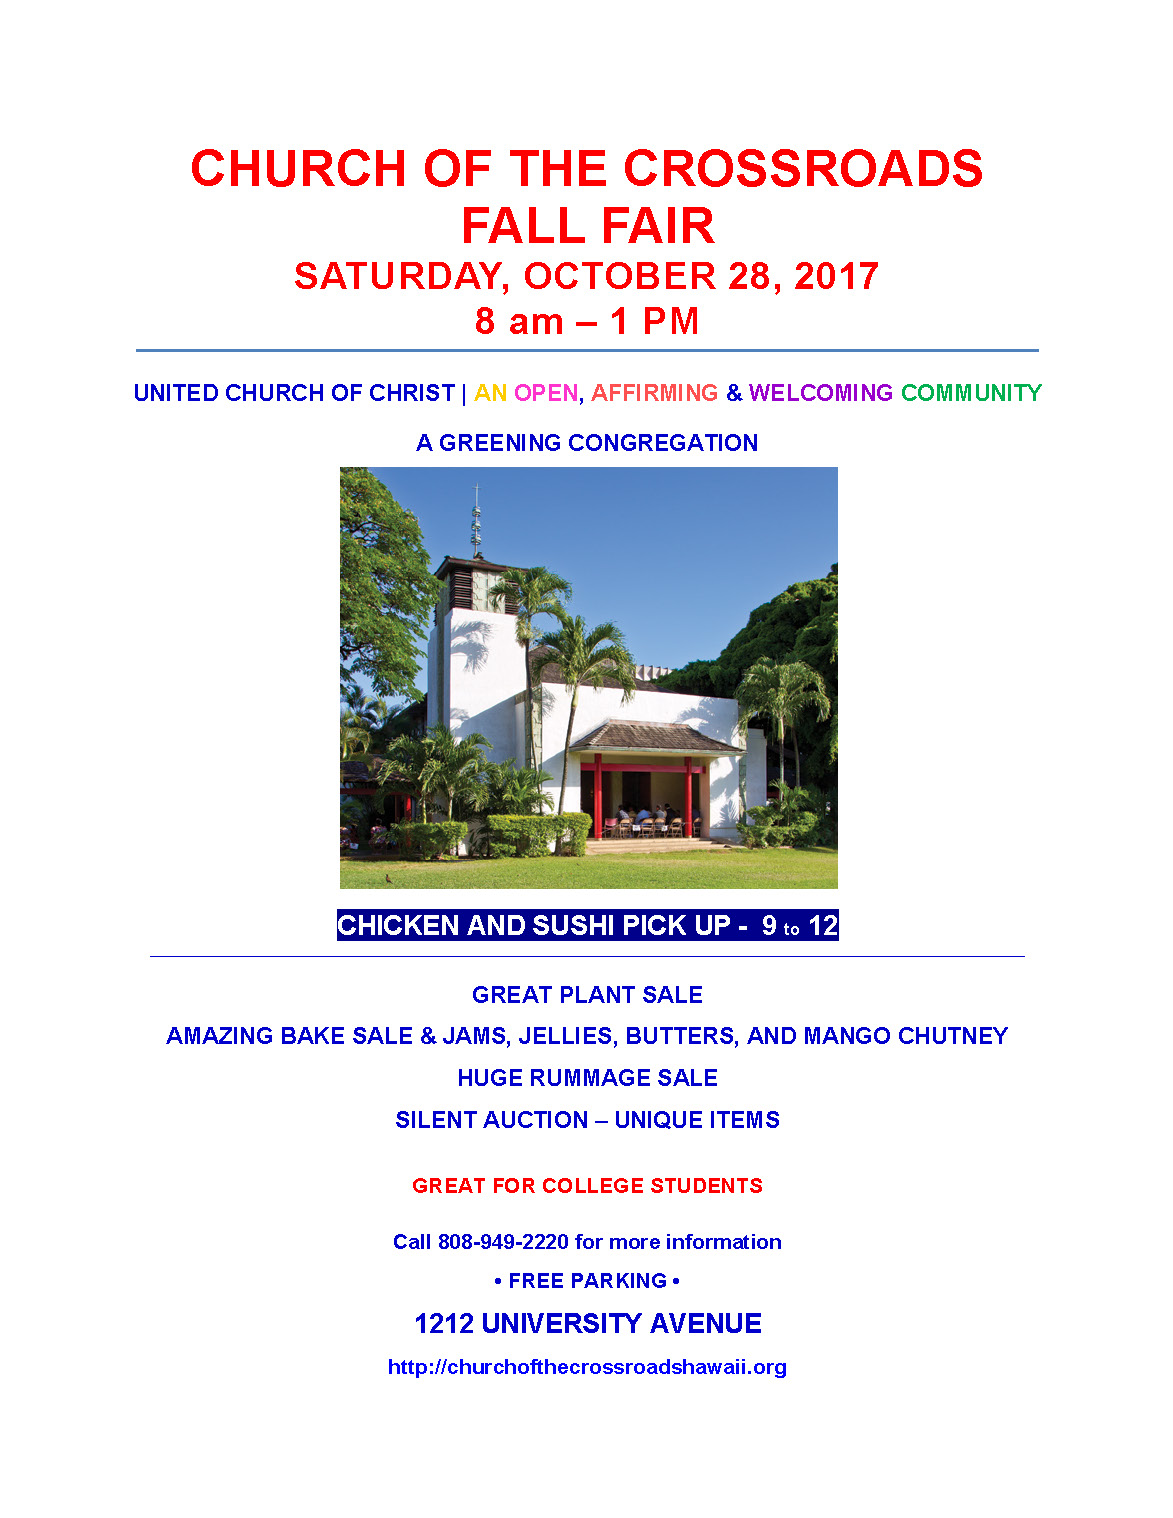 Crossroads Fall Fair Oct 28, 2017